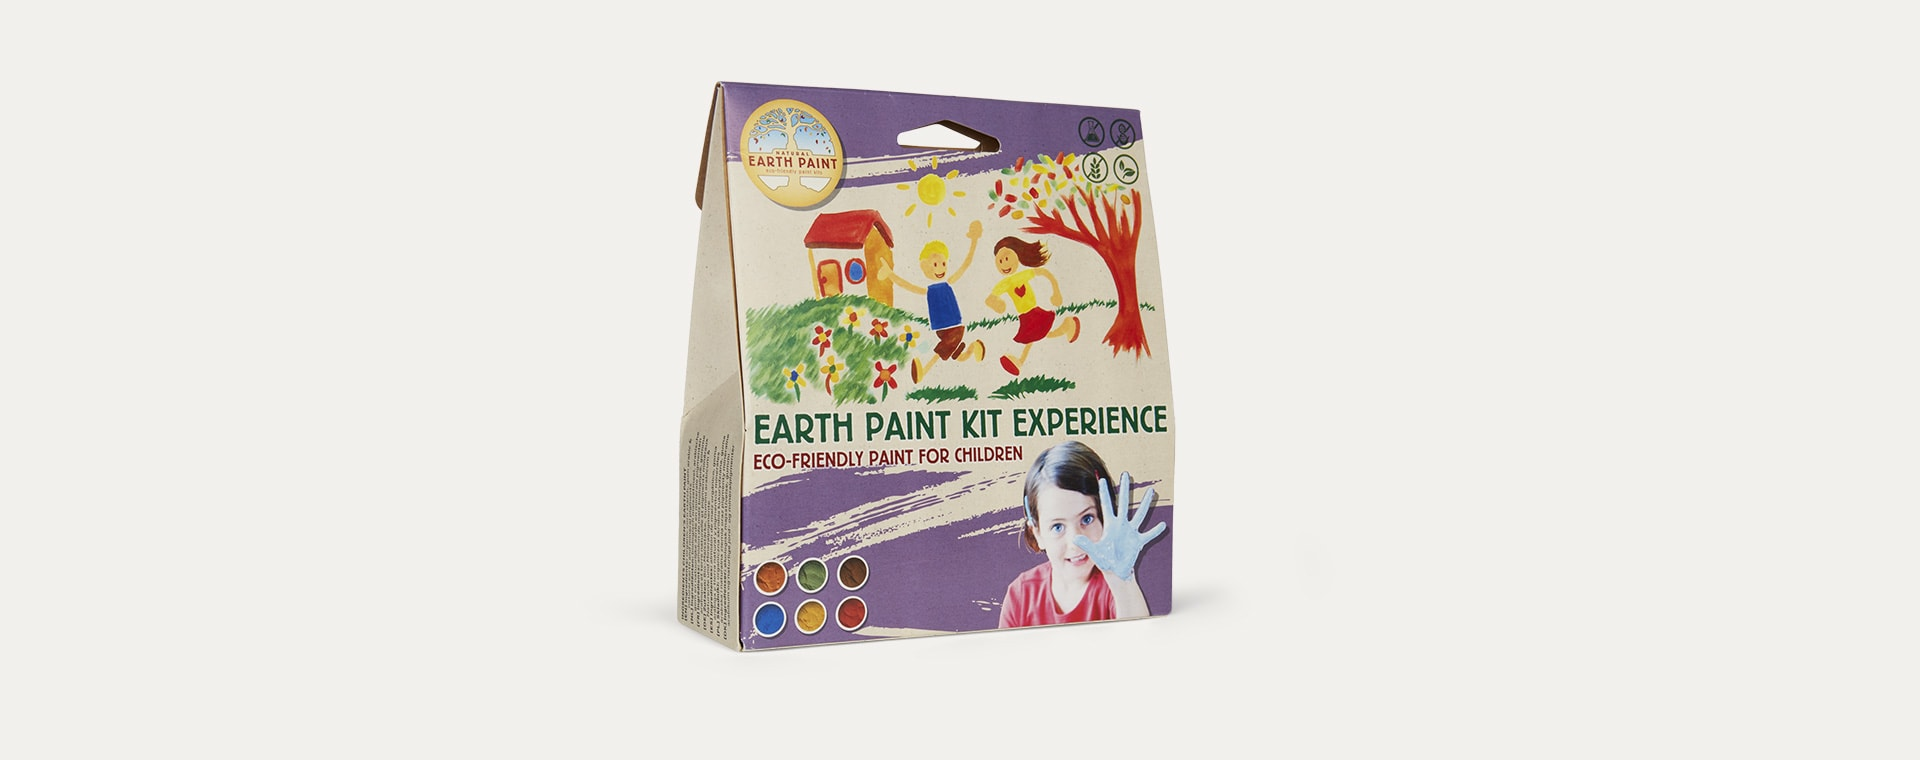 Multi Natural Earth Paint Natural Earth Paint Earth Paint Kit Experience